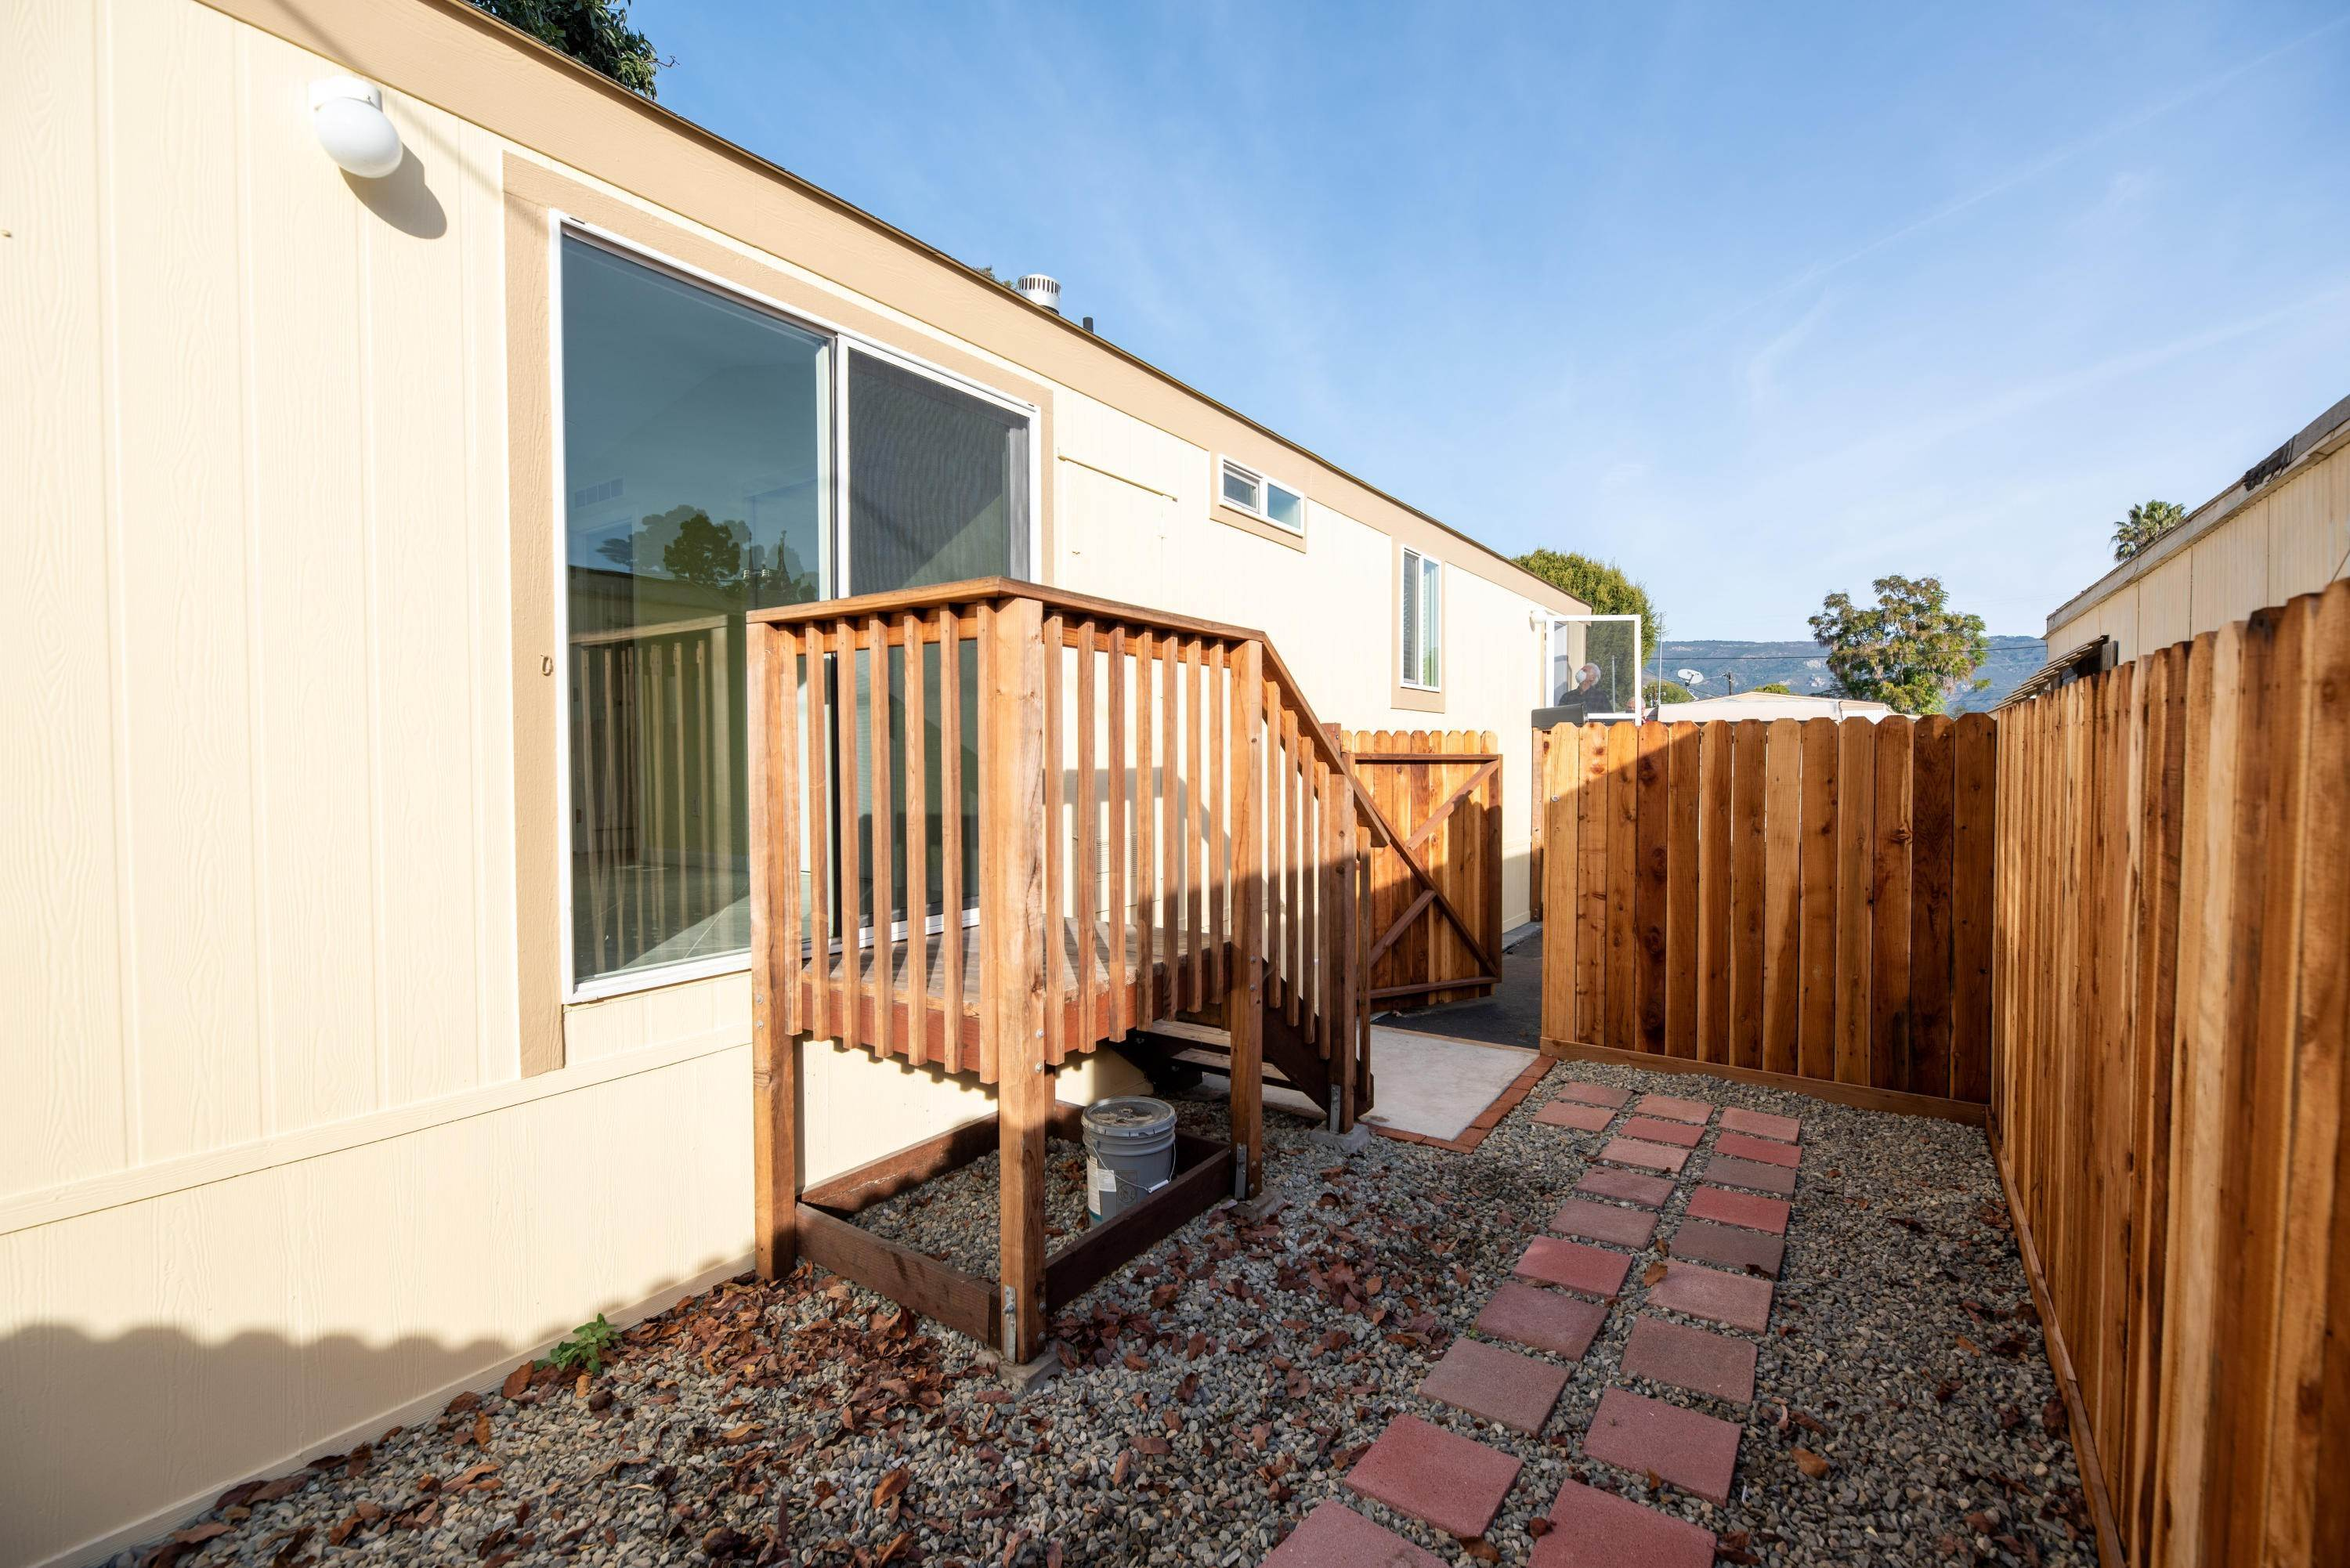 2. Manufactured Housing for Sale at 520 Pine Avenue Goleta, California 93117 United States